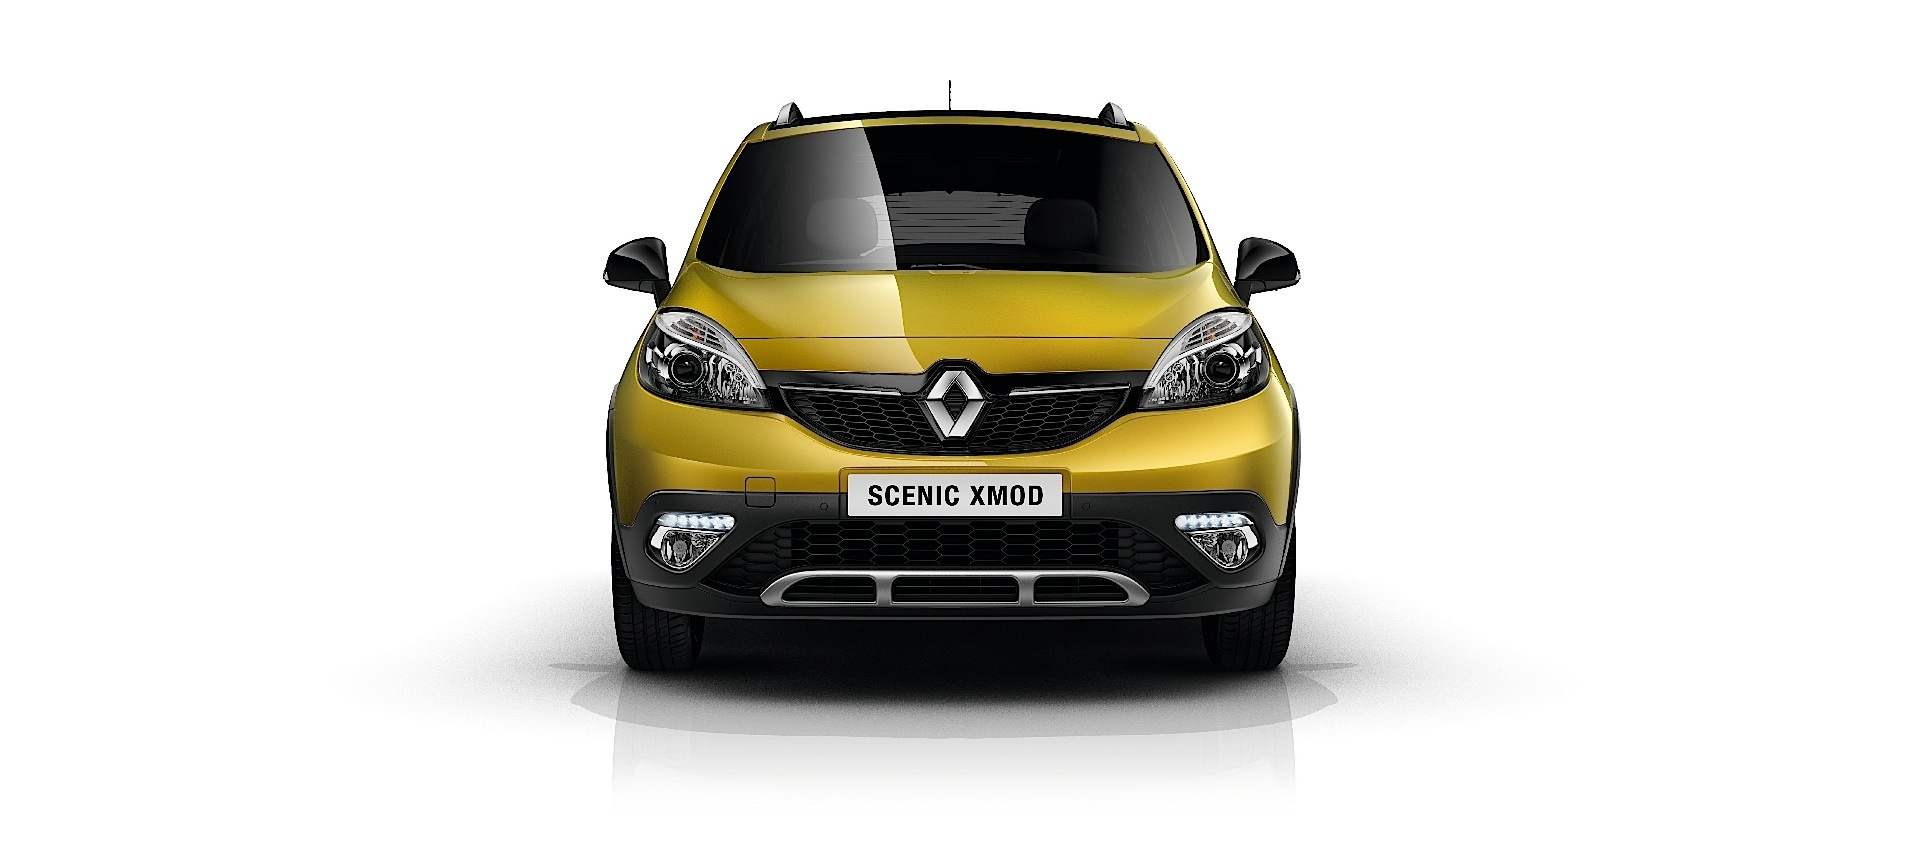 renault scenic xmod specs 2013 2014 2015 2016 2017 autoevolution. Black Bedroom Furniture Sets. Home Design Ideas